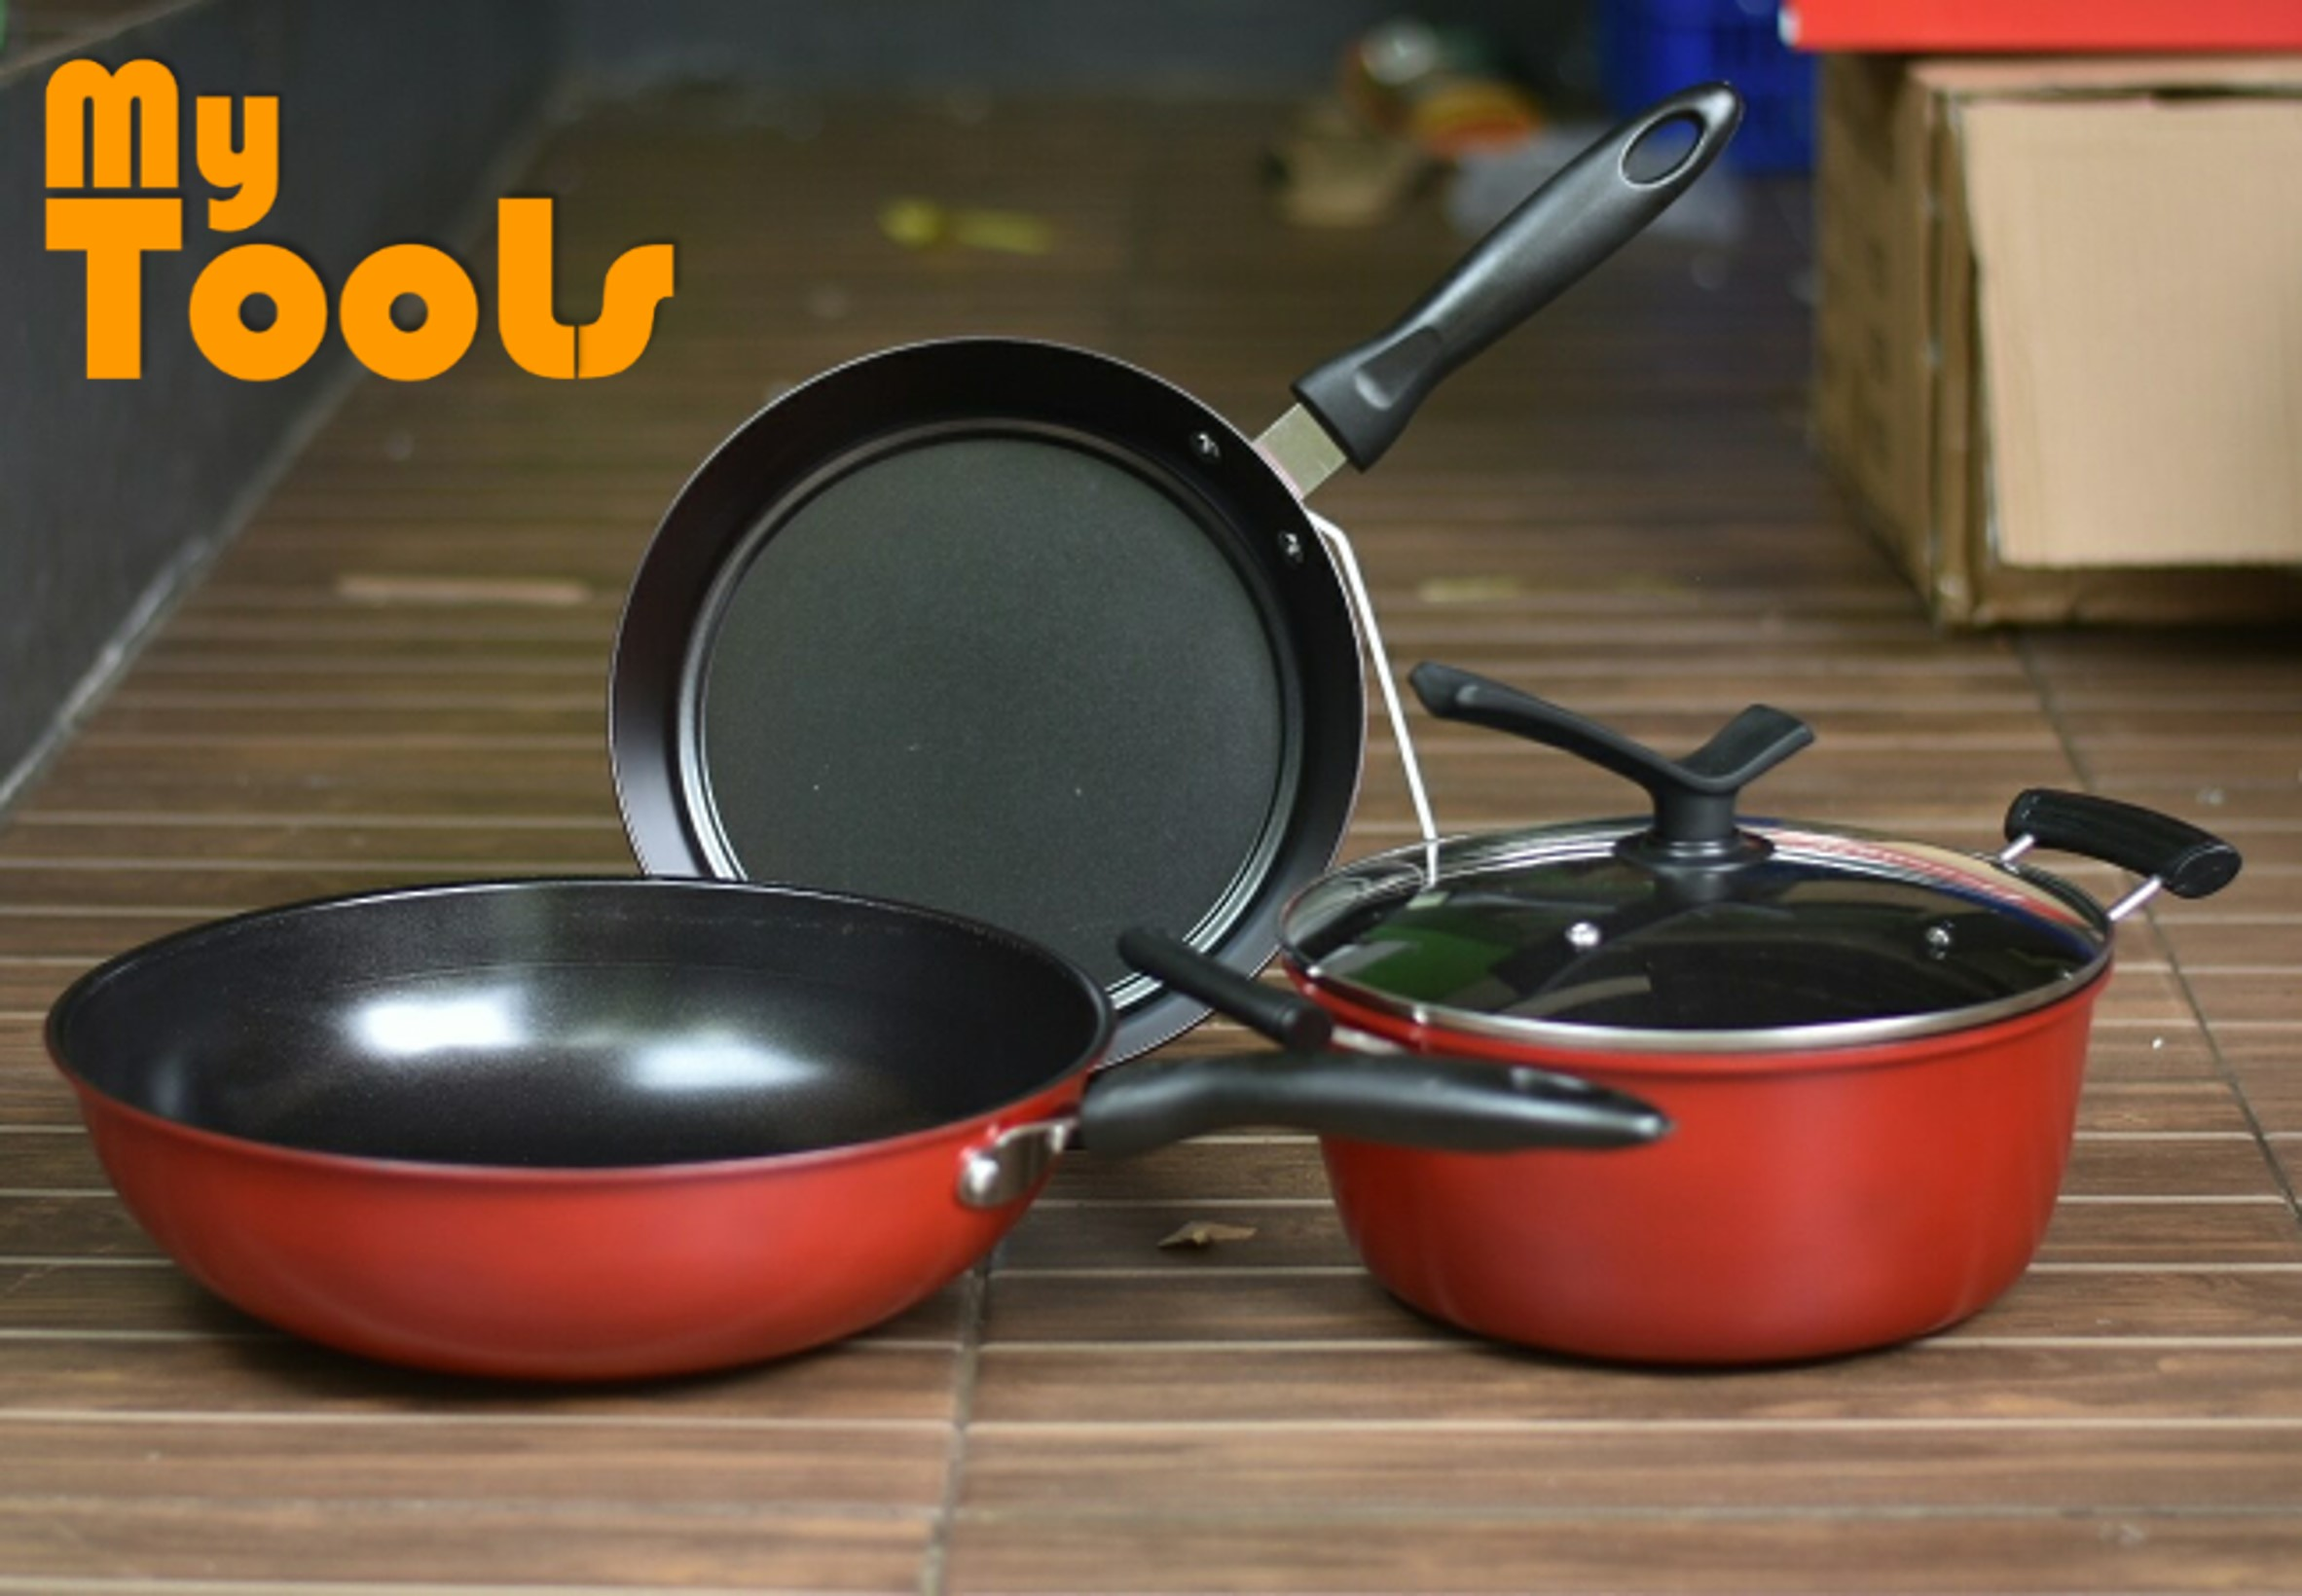 Mytools Monaco Set of 4 Non-Stick Kitchen Cookwares Wok Pan Pot Set with Heat Insulated Handle